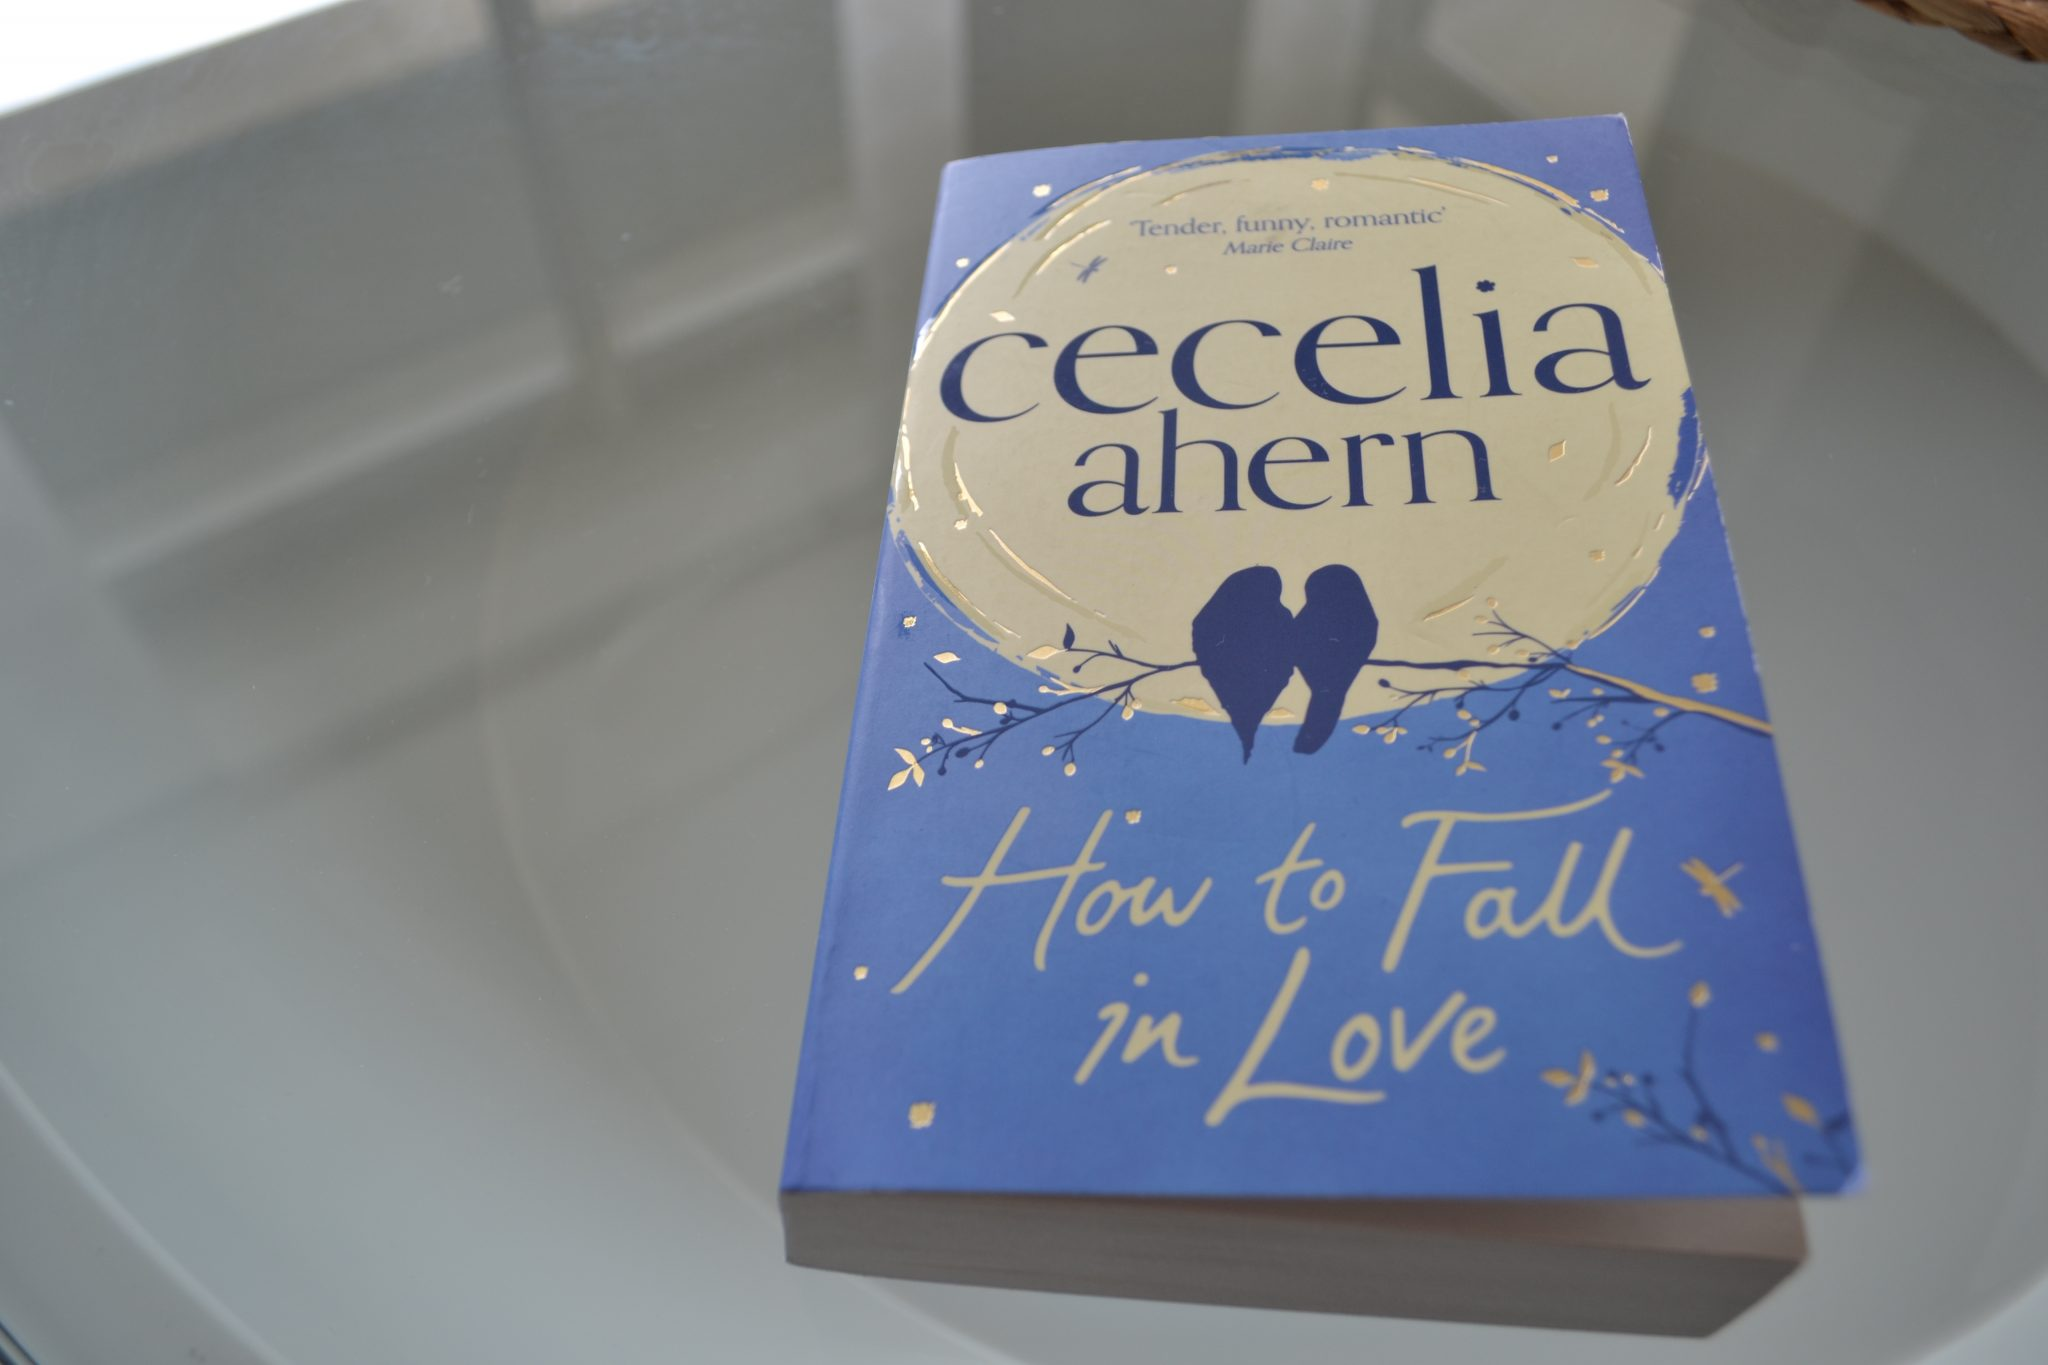 Books: How to Fall in Love | Cecelia Ahern - DSC 0448